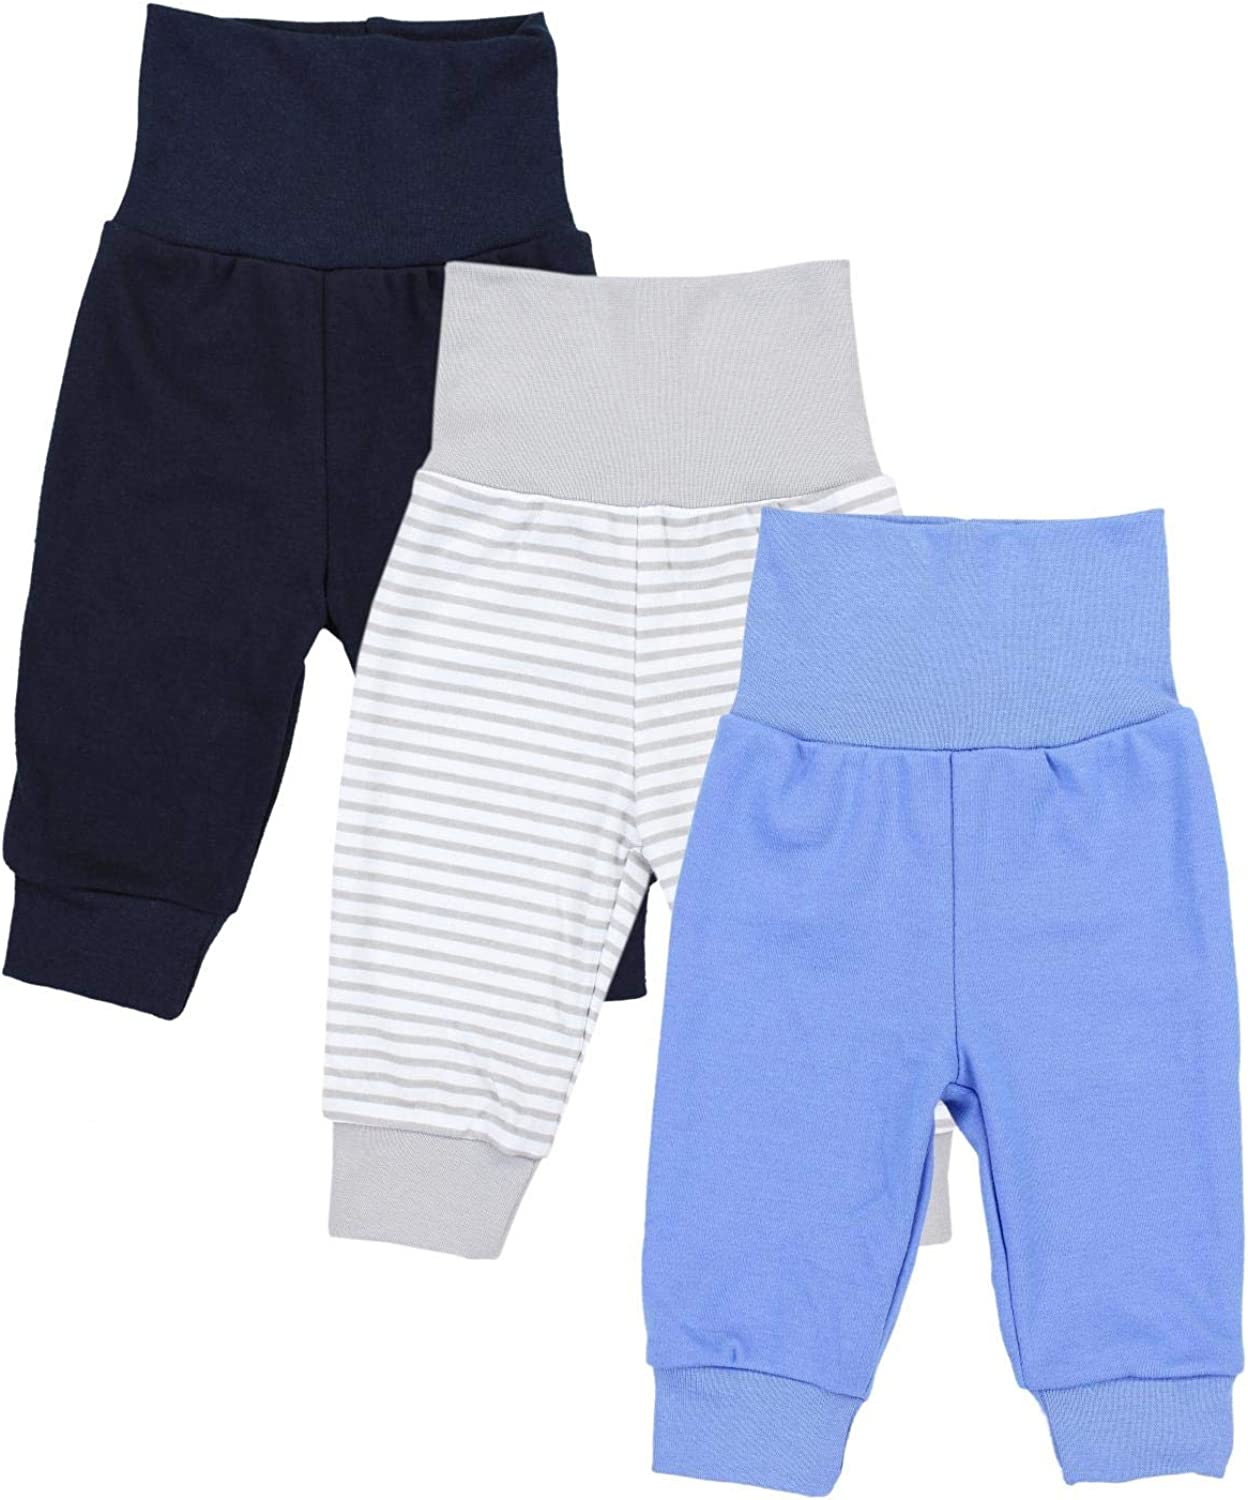 TupTam Baby Boys Long Trousers Pack of 3